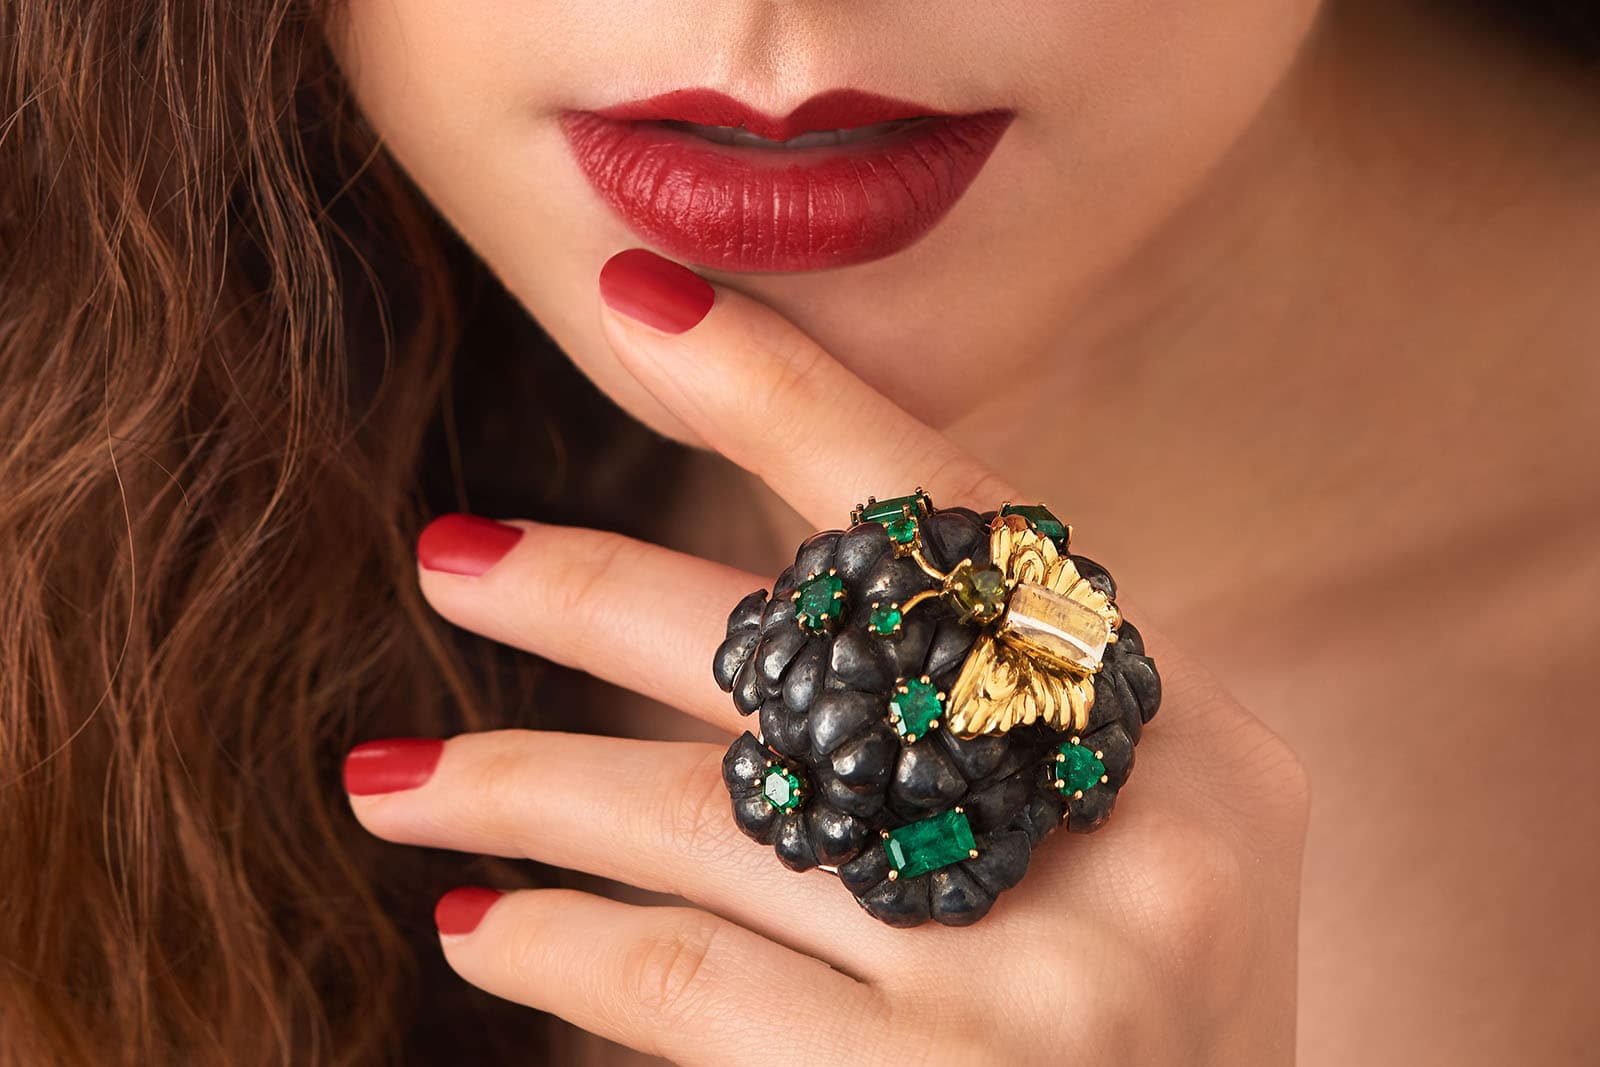 Brummé Tu Felix Austria ring. All of the gems - emeralds, moonstone and sphene - are from the Austrian Alps